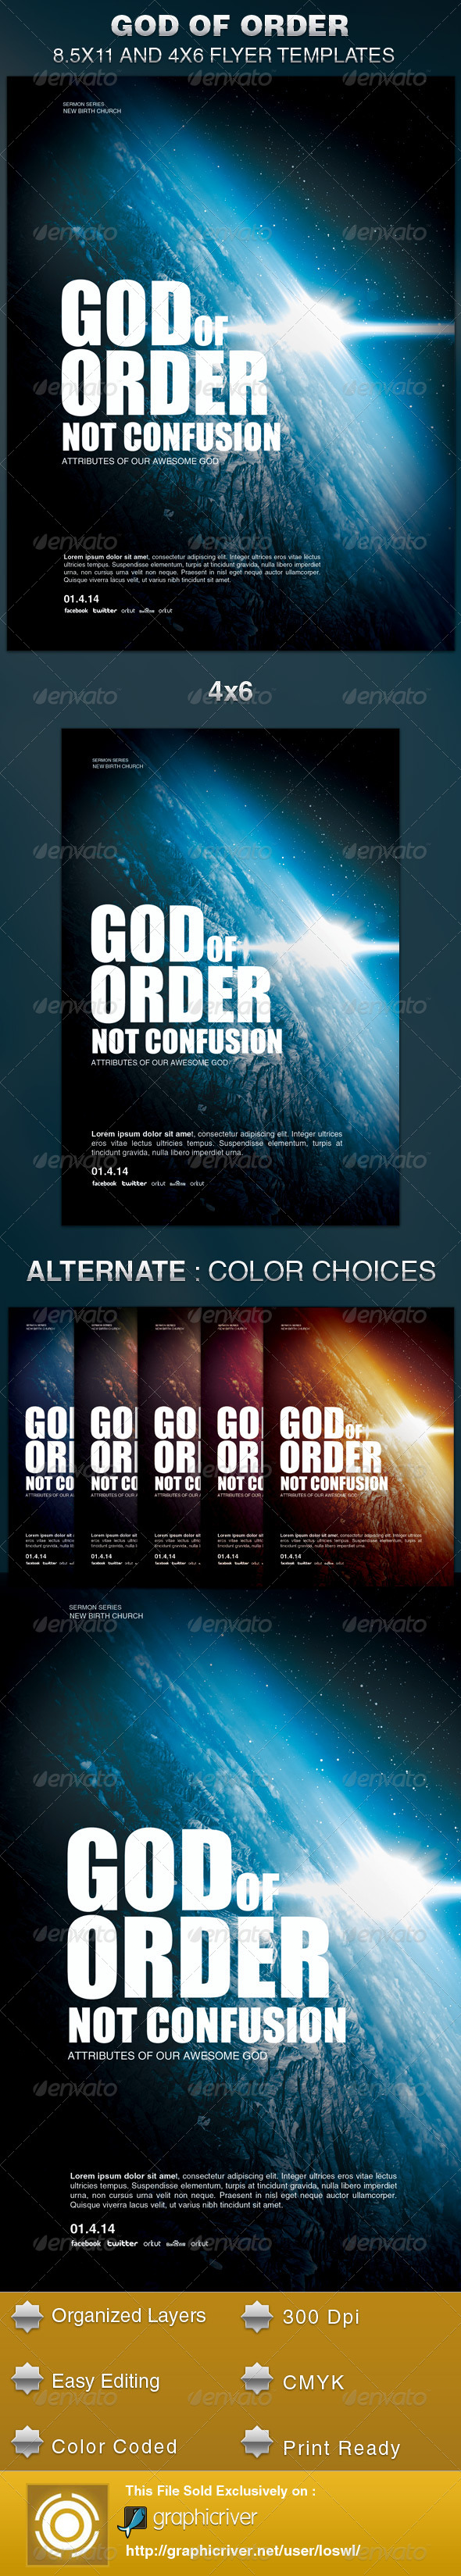 GraphicRiver God of Order Church Flyer Template 6135496